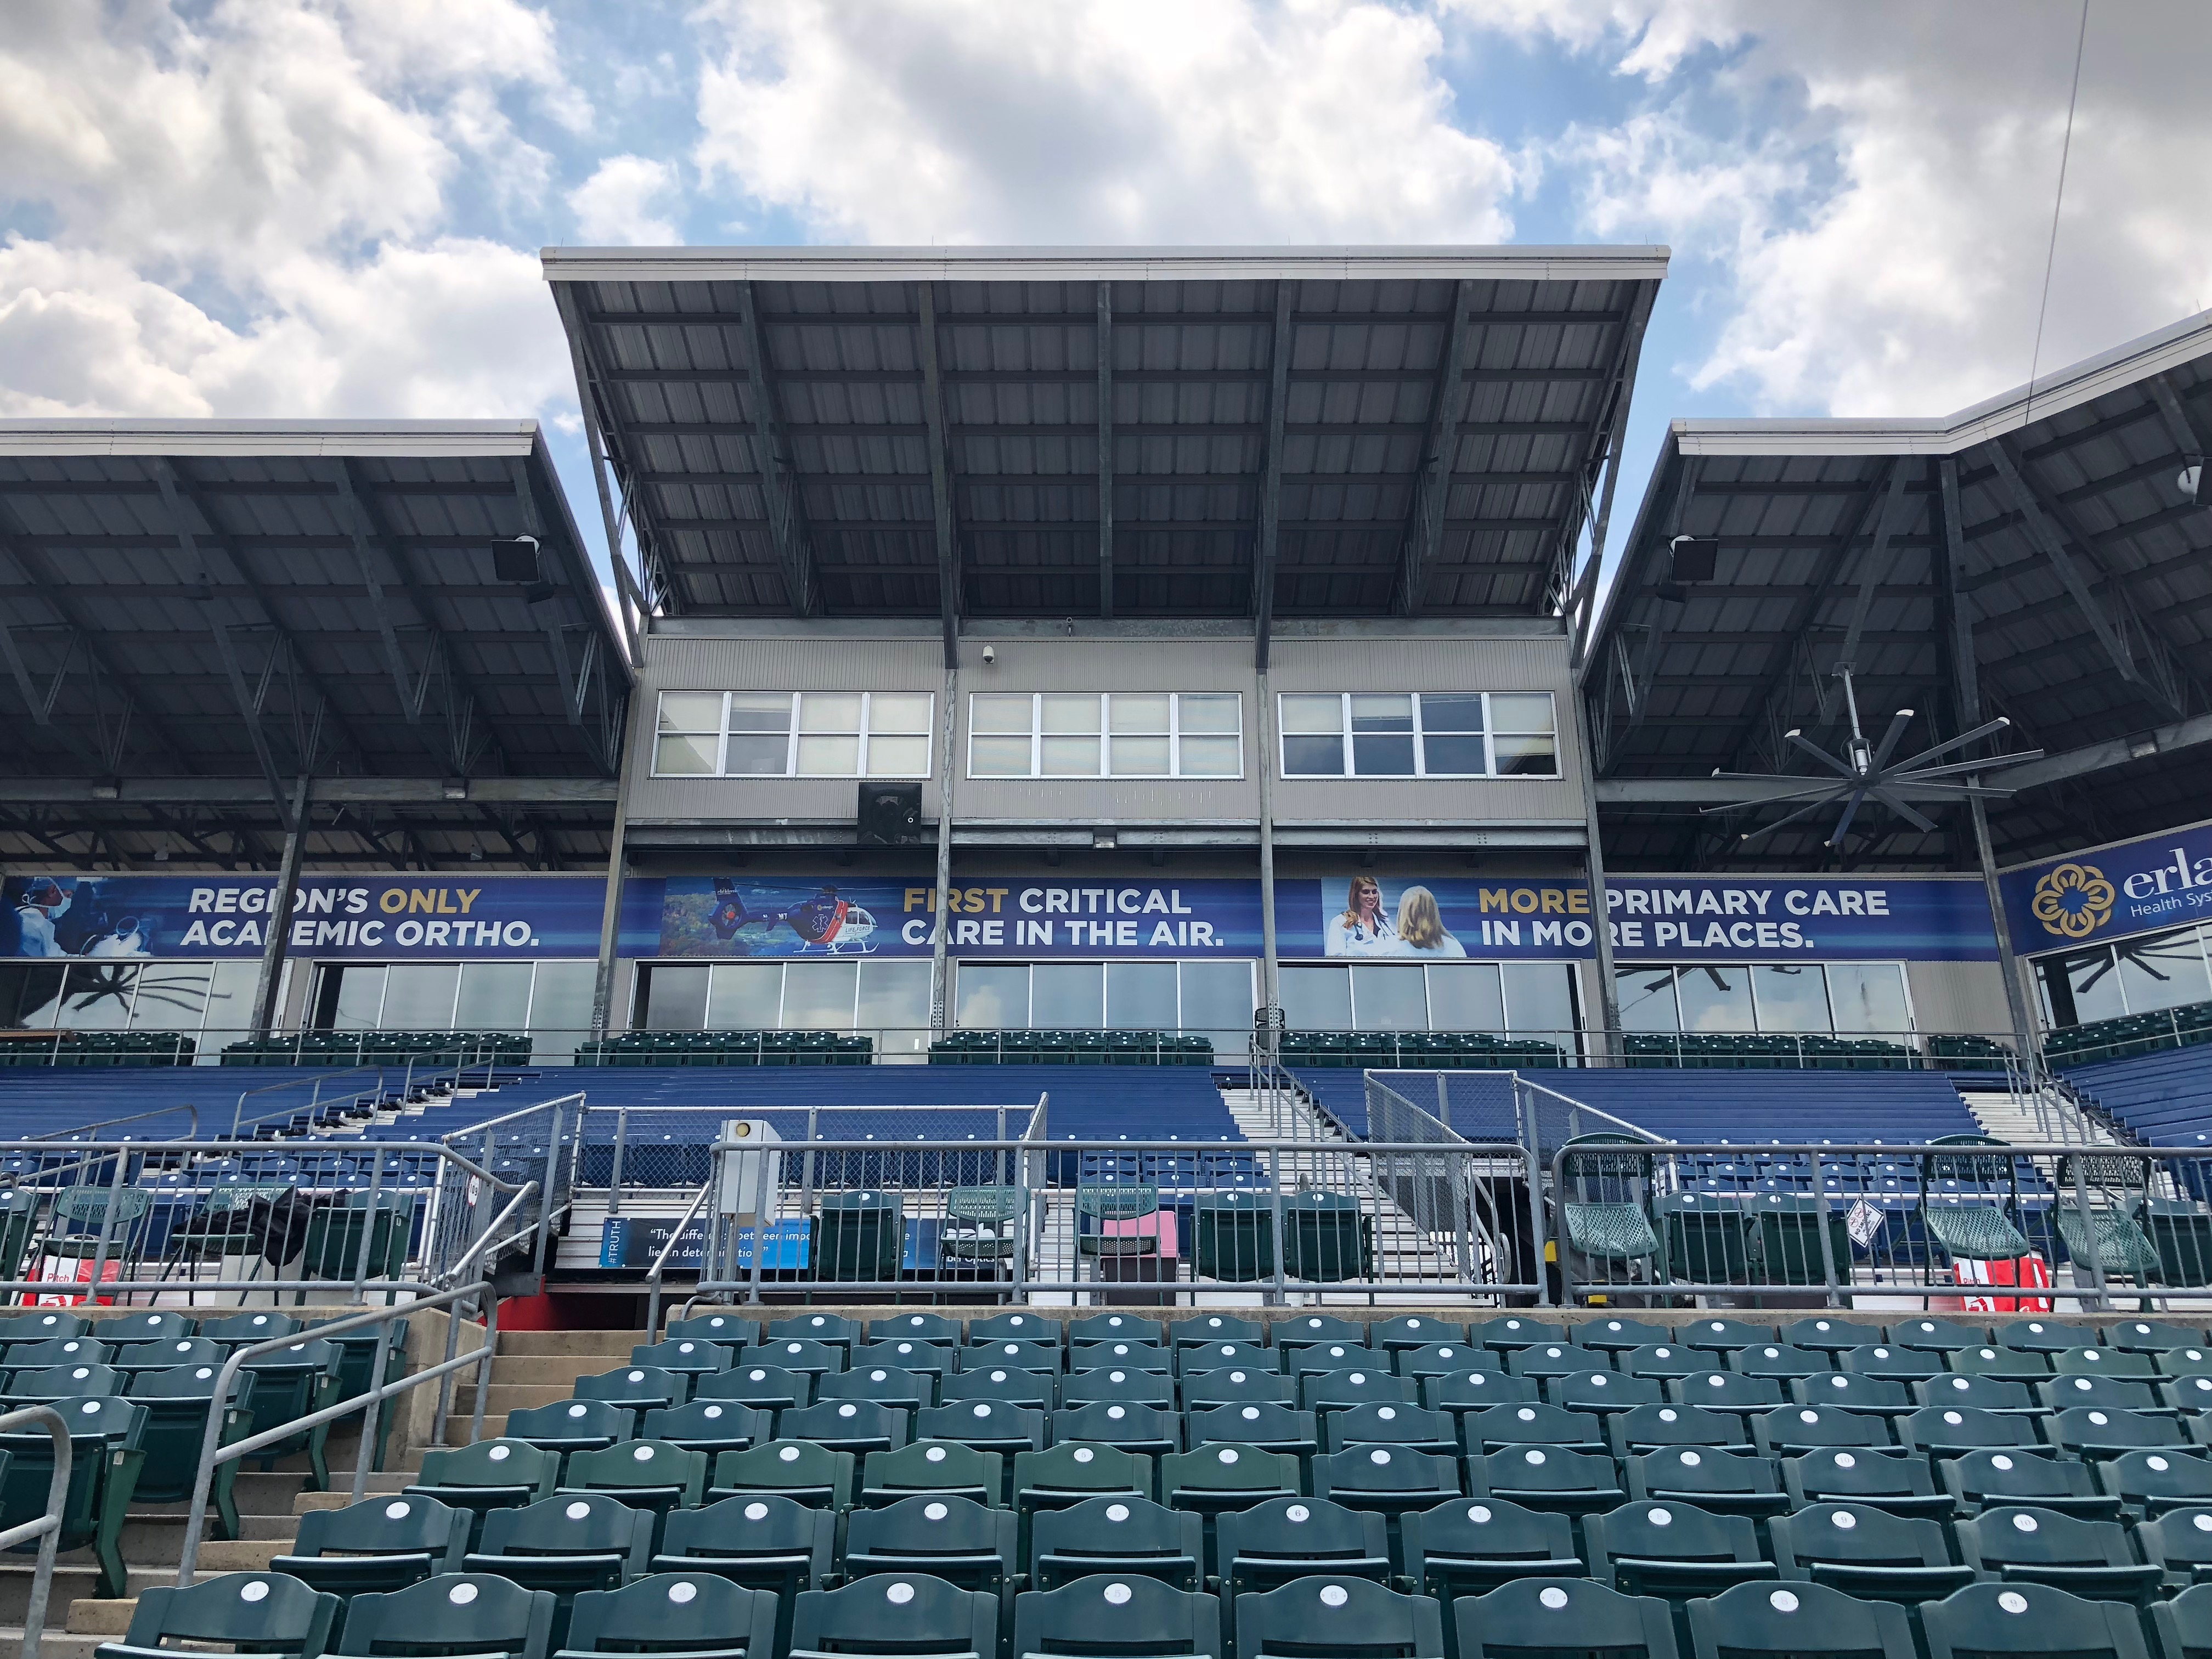 Chattanooga Lookouts AT&T Stadium